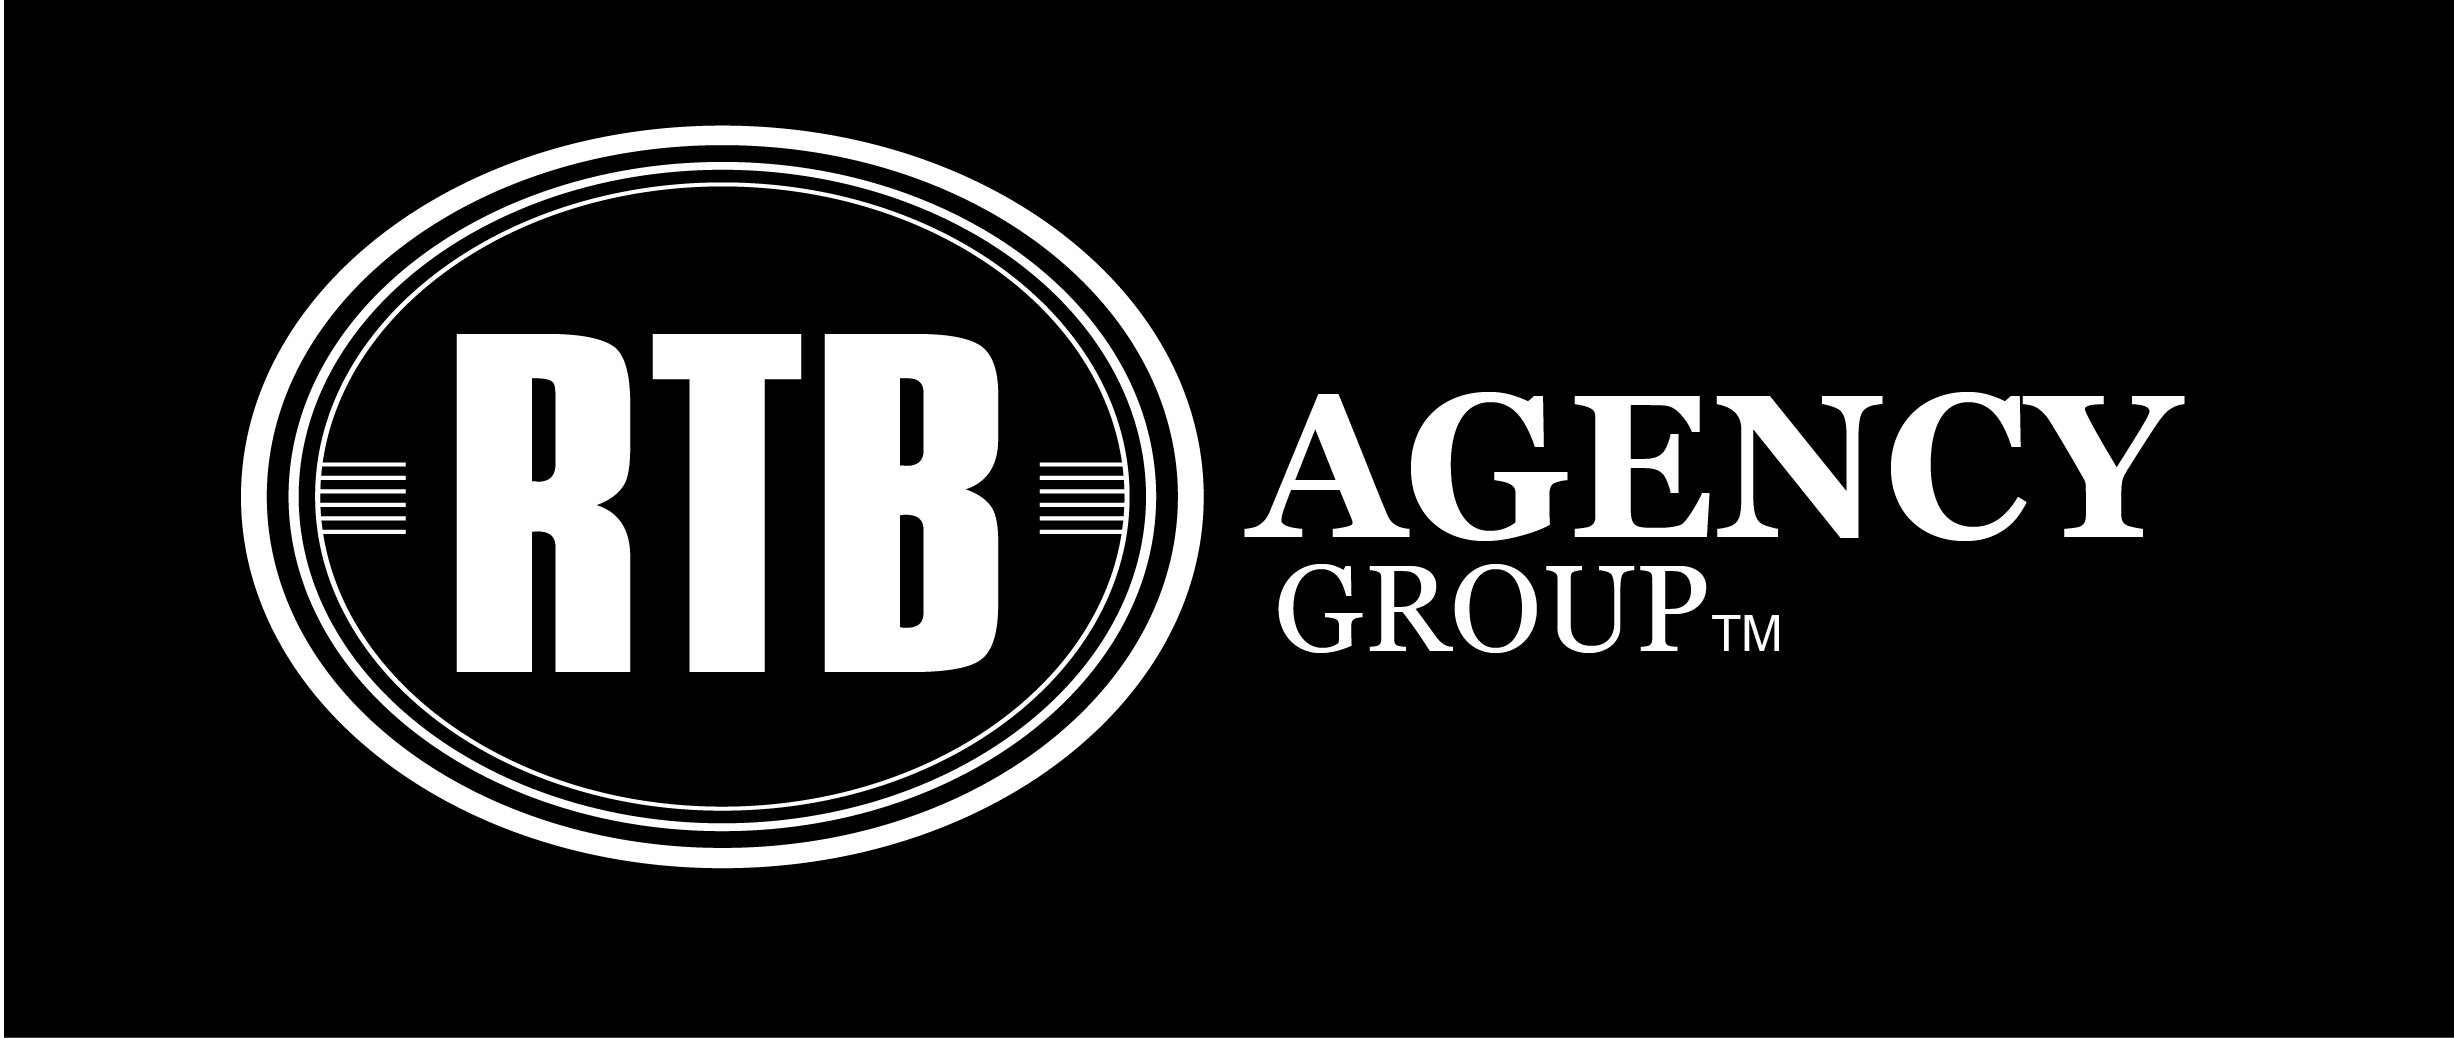 Raising The Barr Agency Group